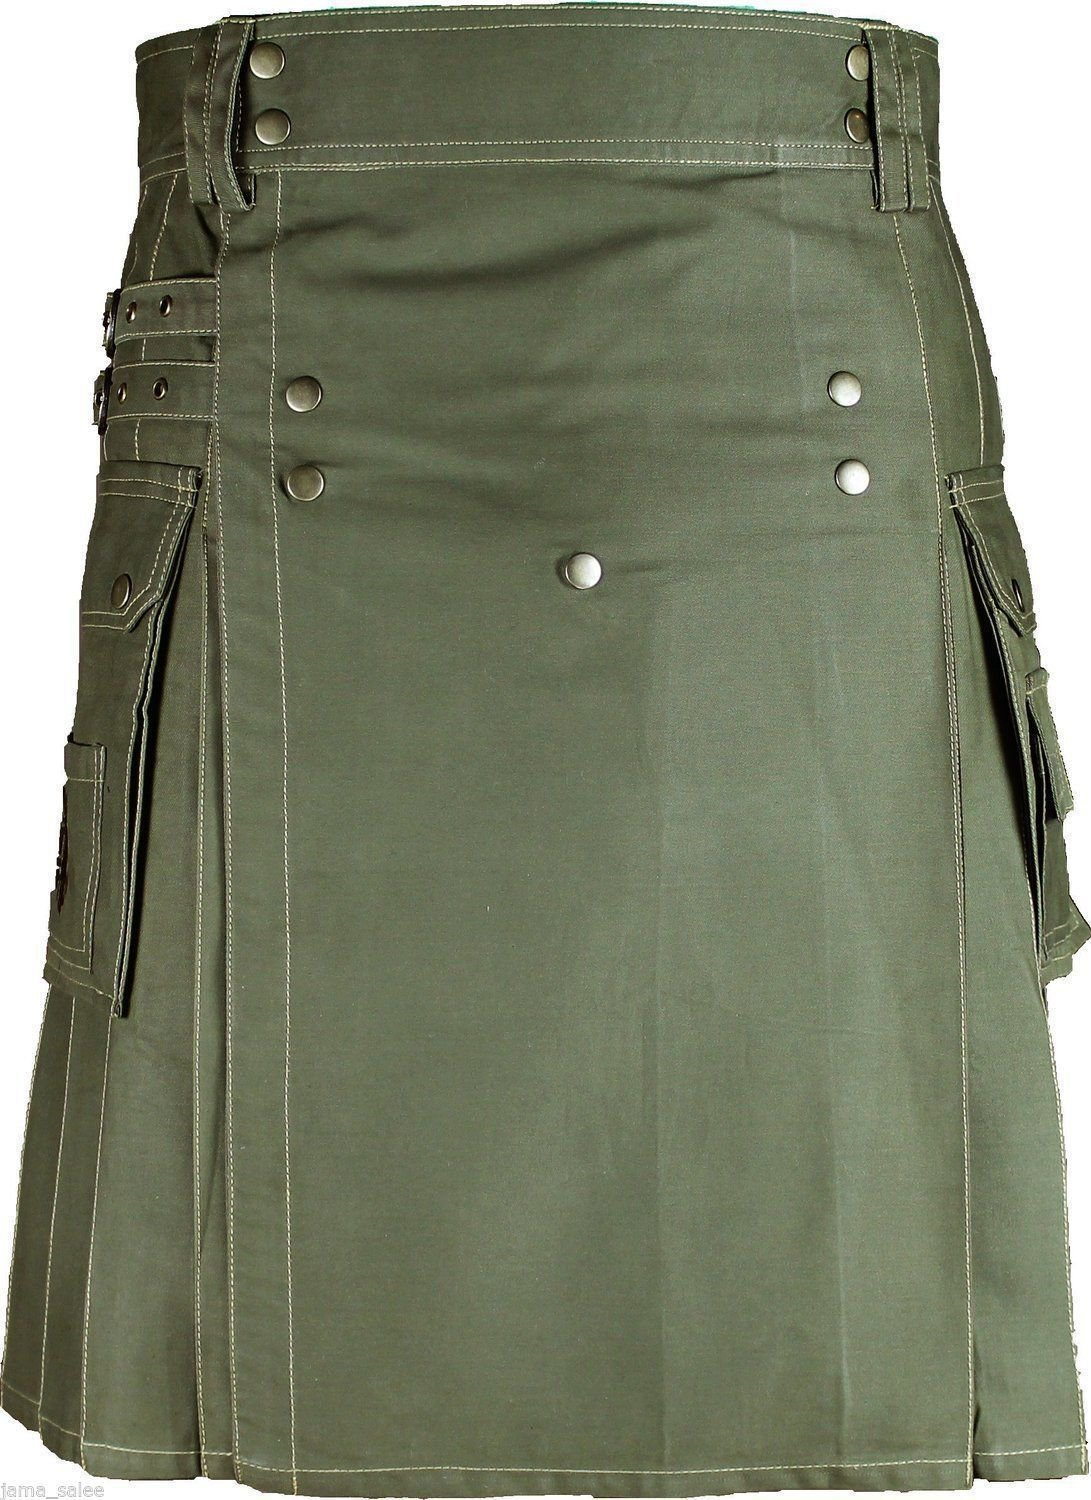 New 52 Size Modern Olive Green Kilt Traditional Scottish Utility Cotton Kilt